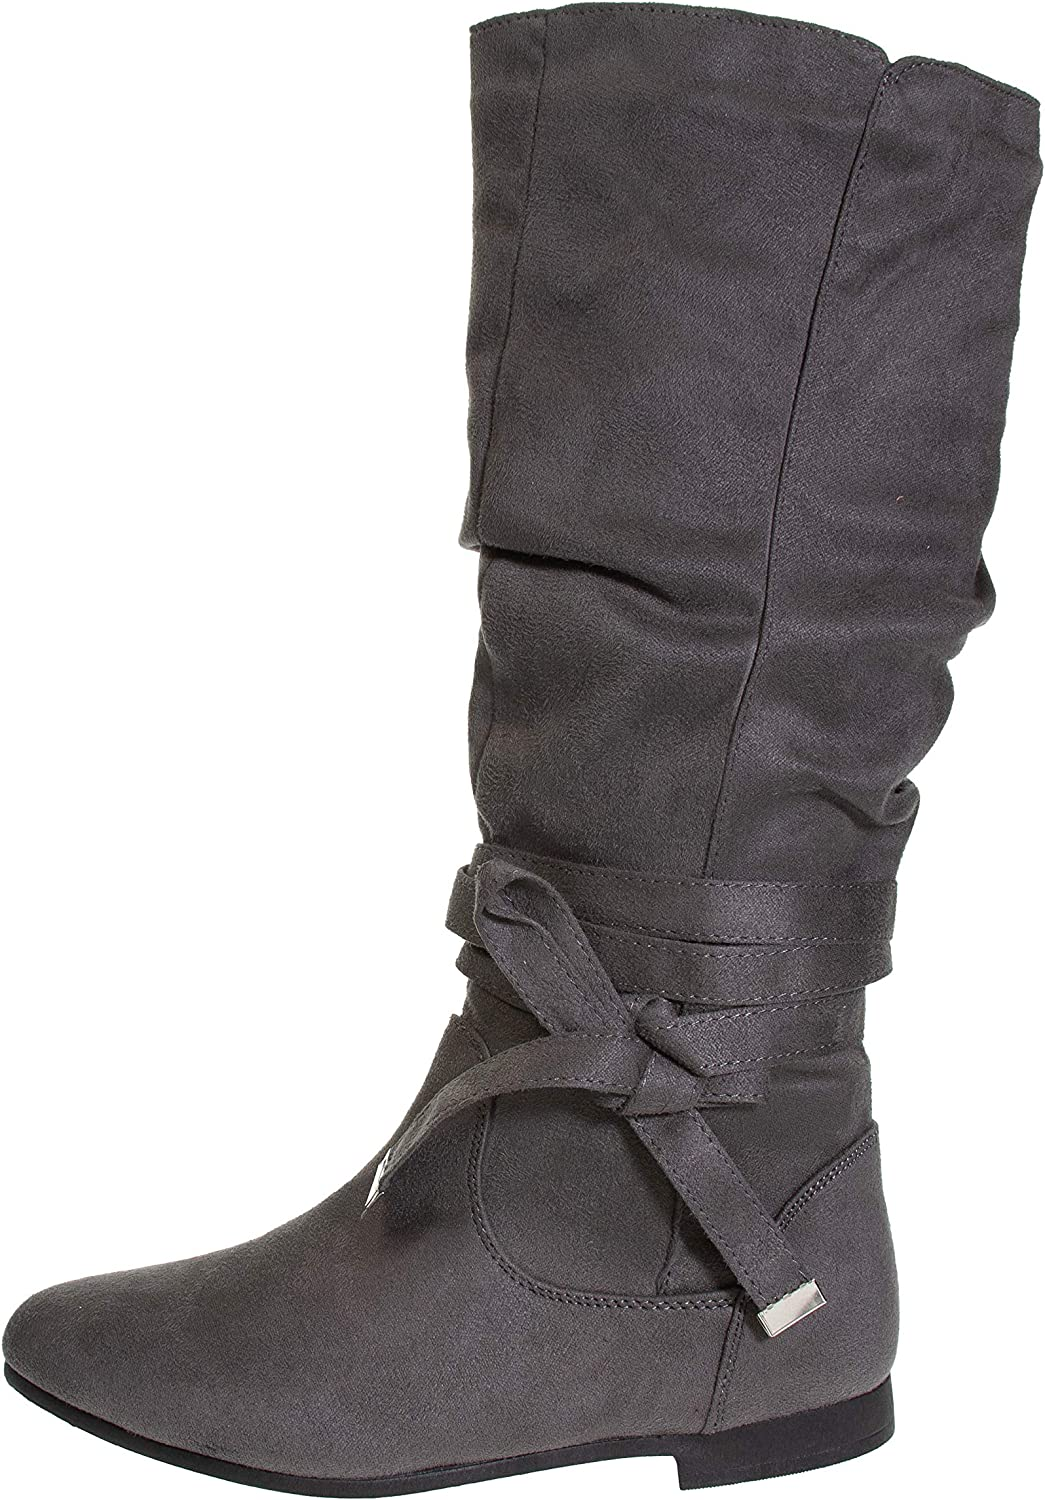 Women's Microsuede Knee-High Riding Boot with Wrap Around Bow Straps Slide-On Fashion Shoes